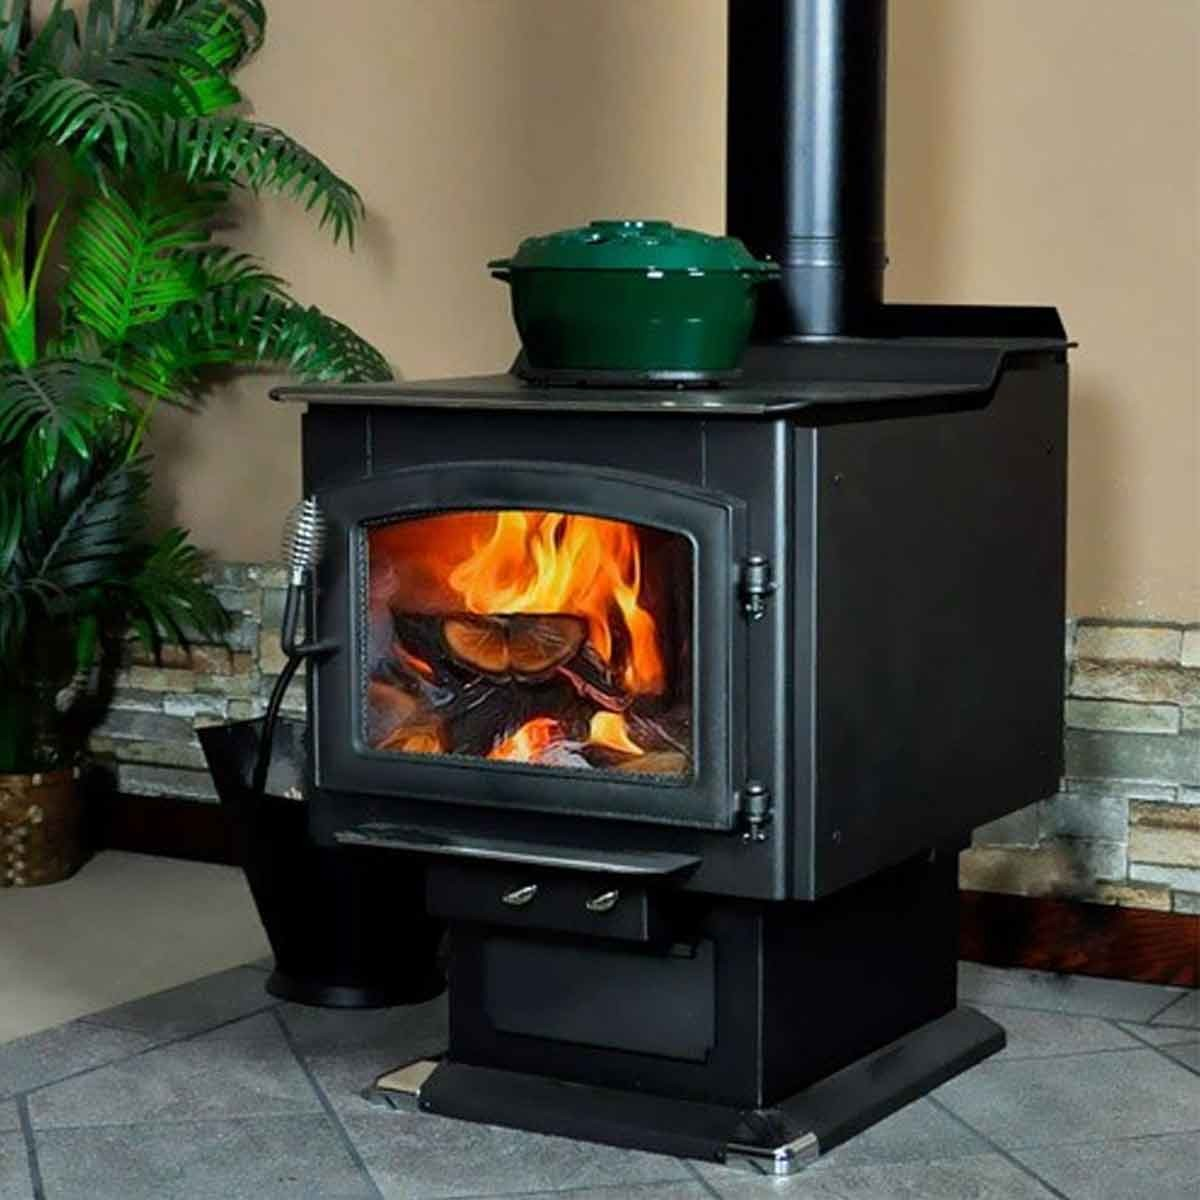 The Many Benefits of a Wood Burning Stove